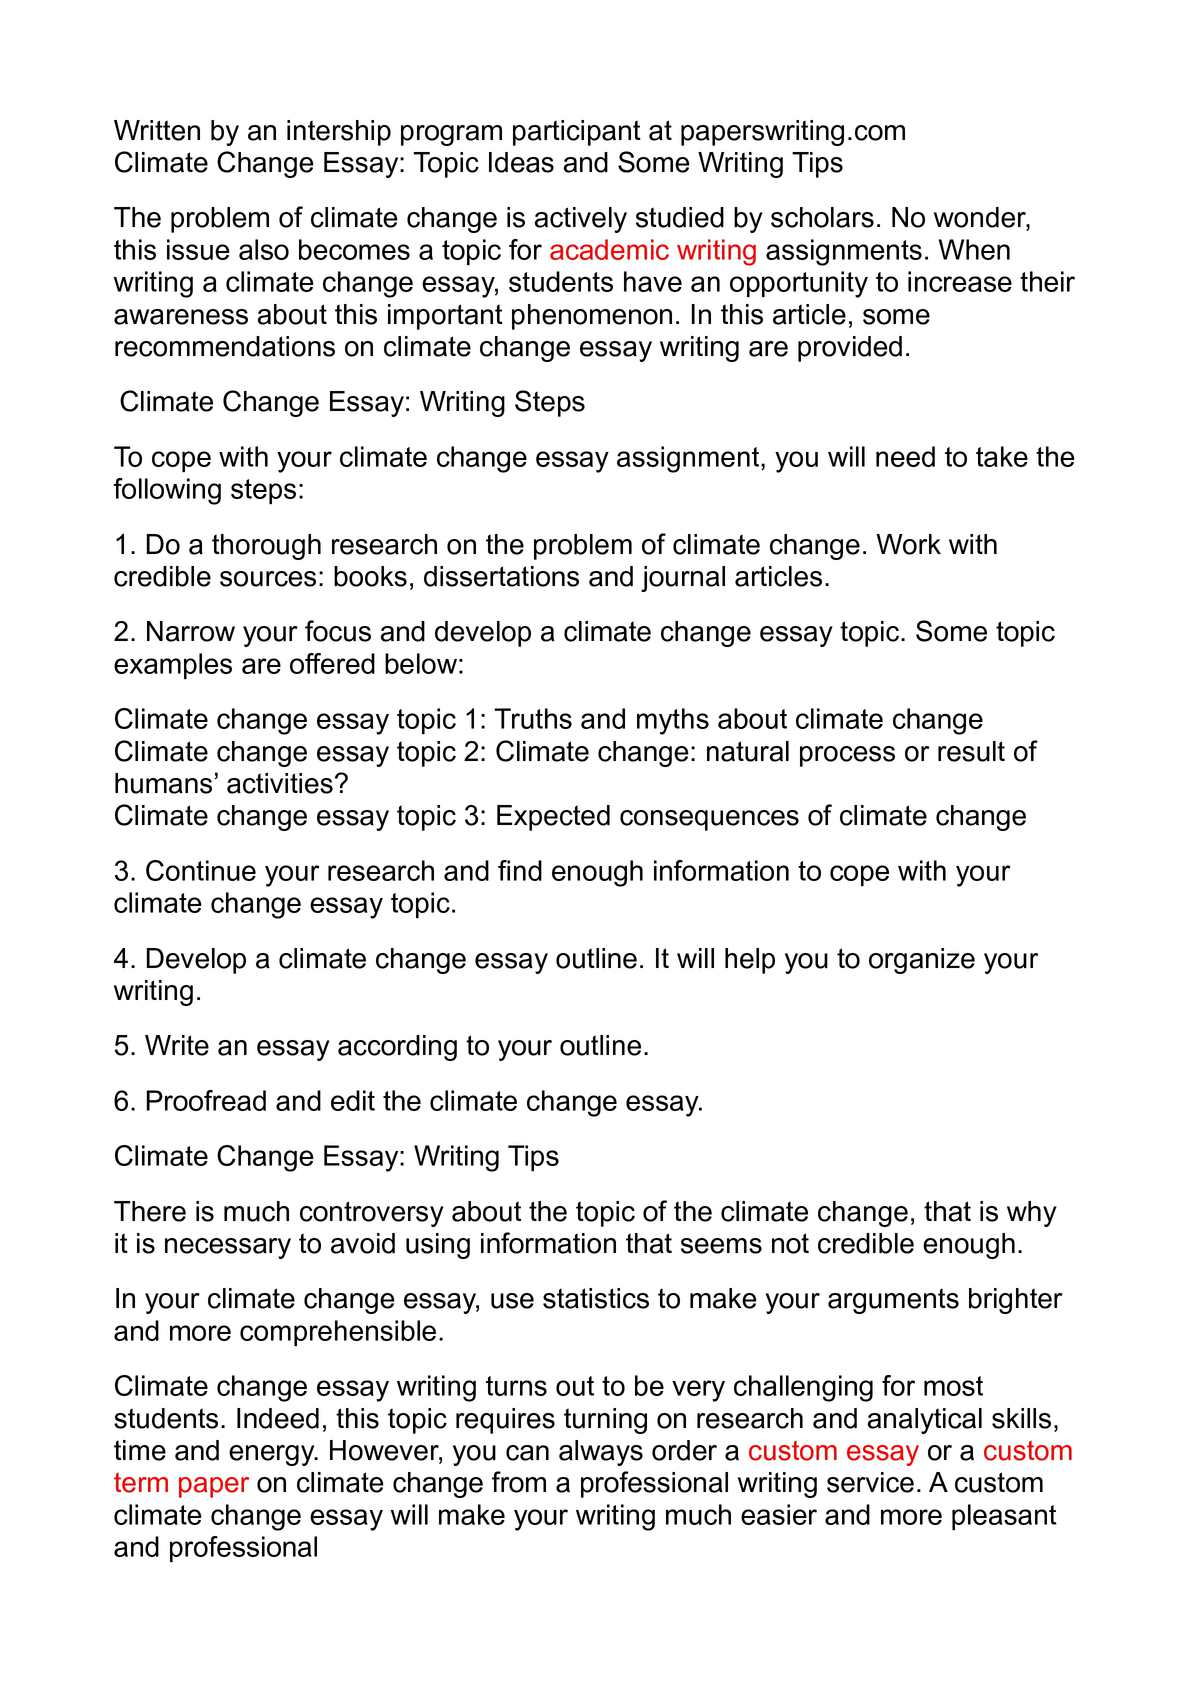 012 Climate Change Essay Topics Uncategorized Global Warming Topic Ways To St Oracleboss Research Paper20 Paper Unusual Ideas Activities For High School Students Unique History Developmental Psychology Full